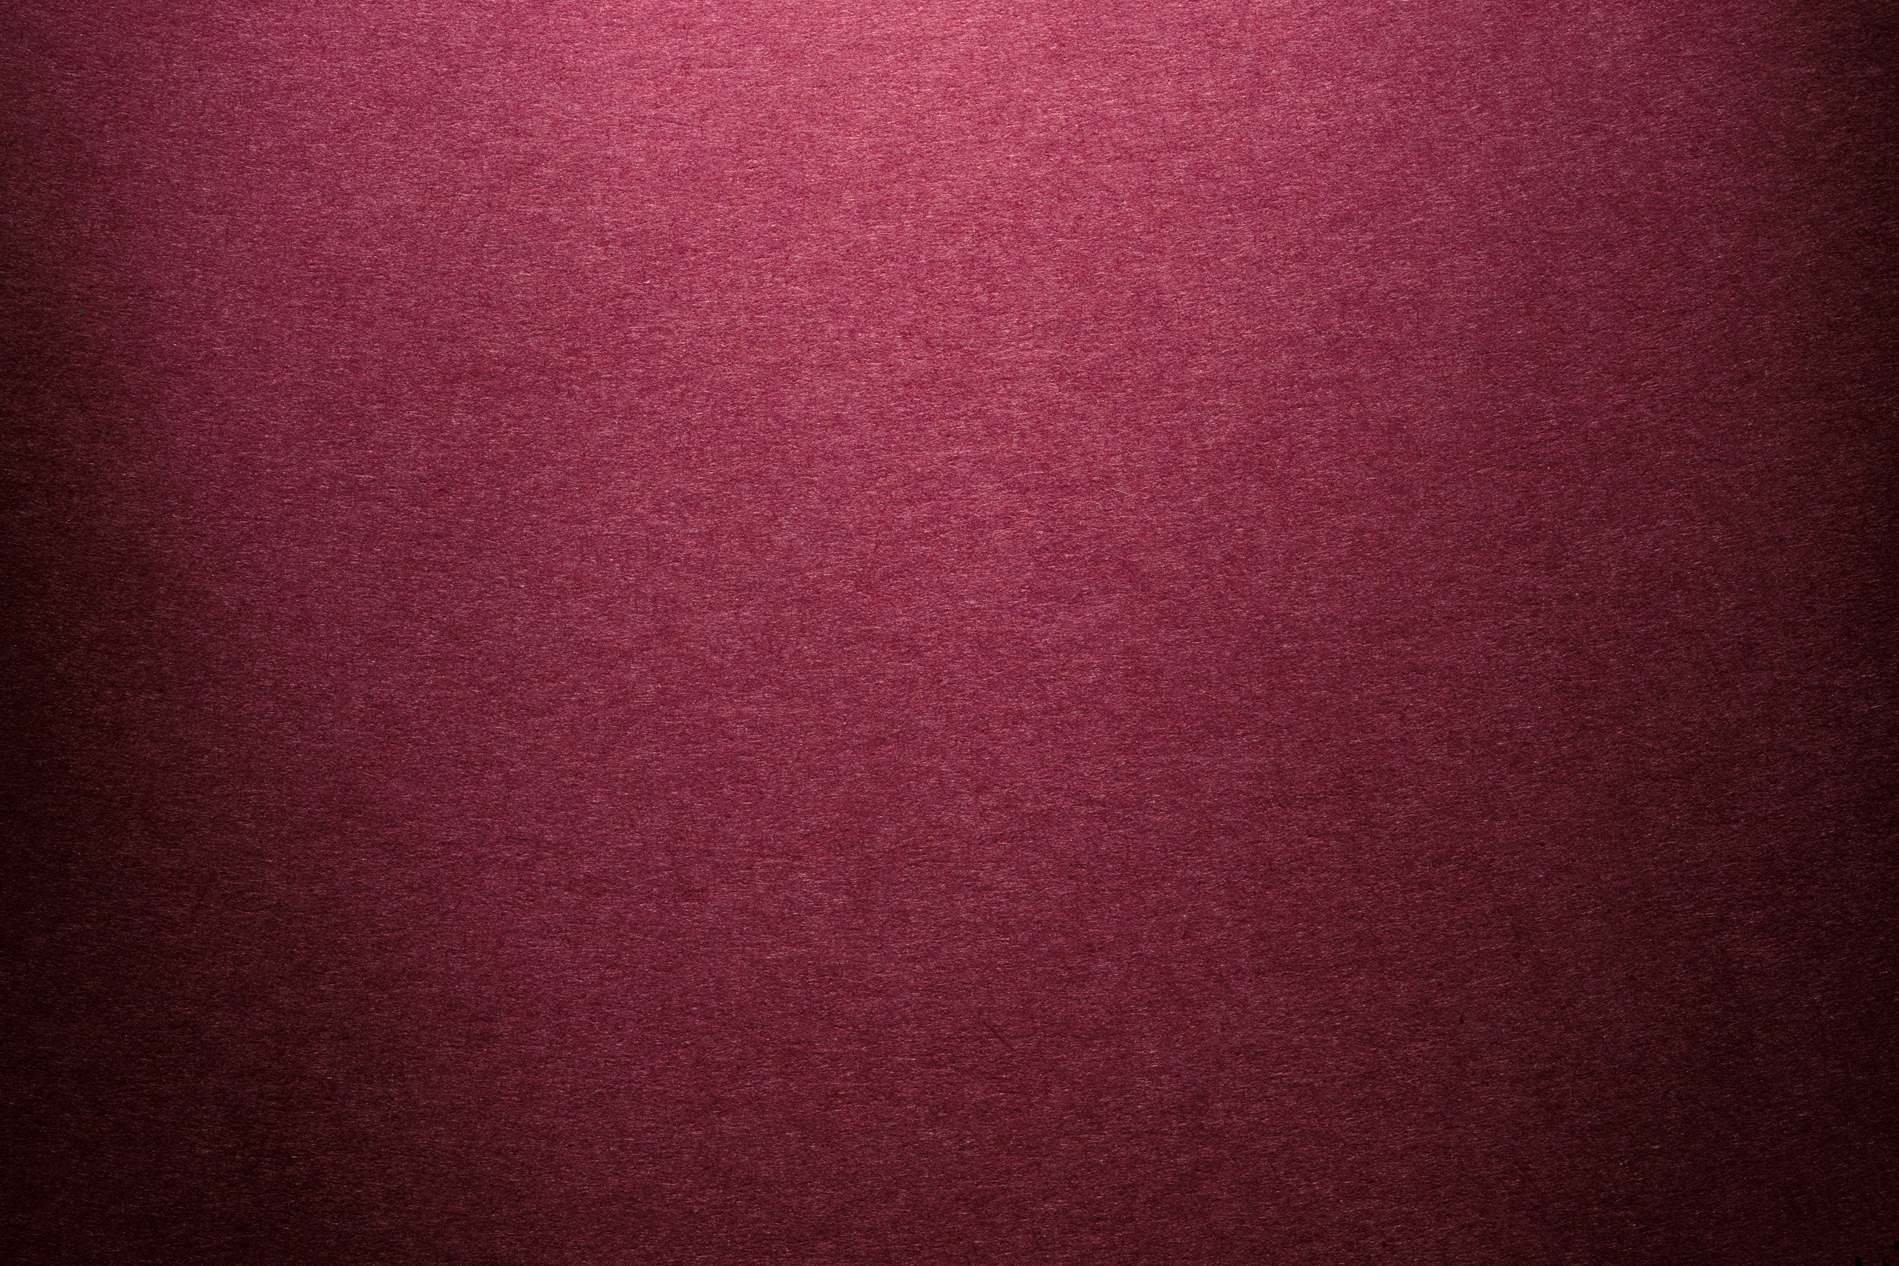 Clean Red Vintage Paper Background Texture